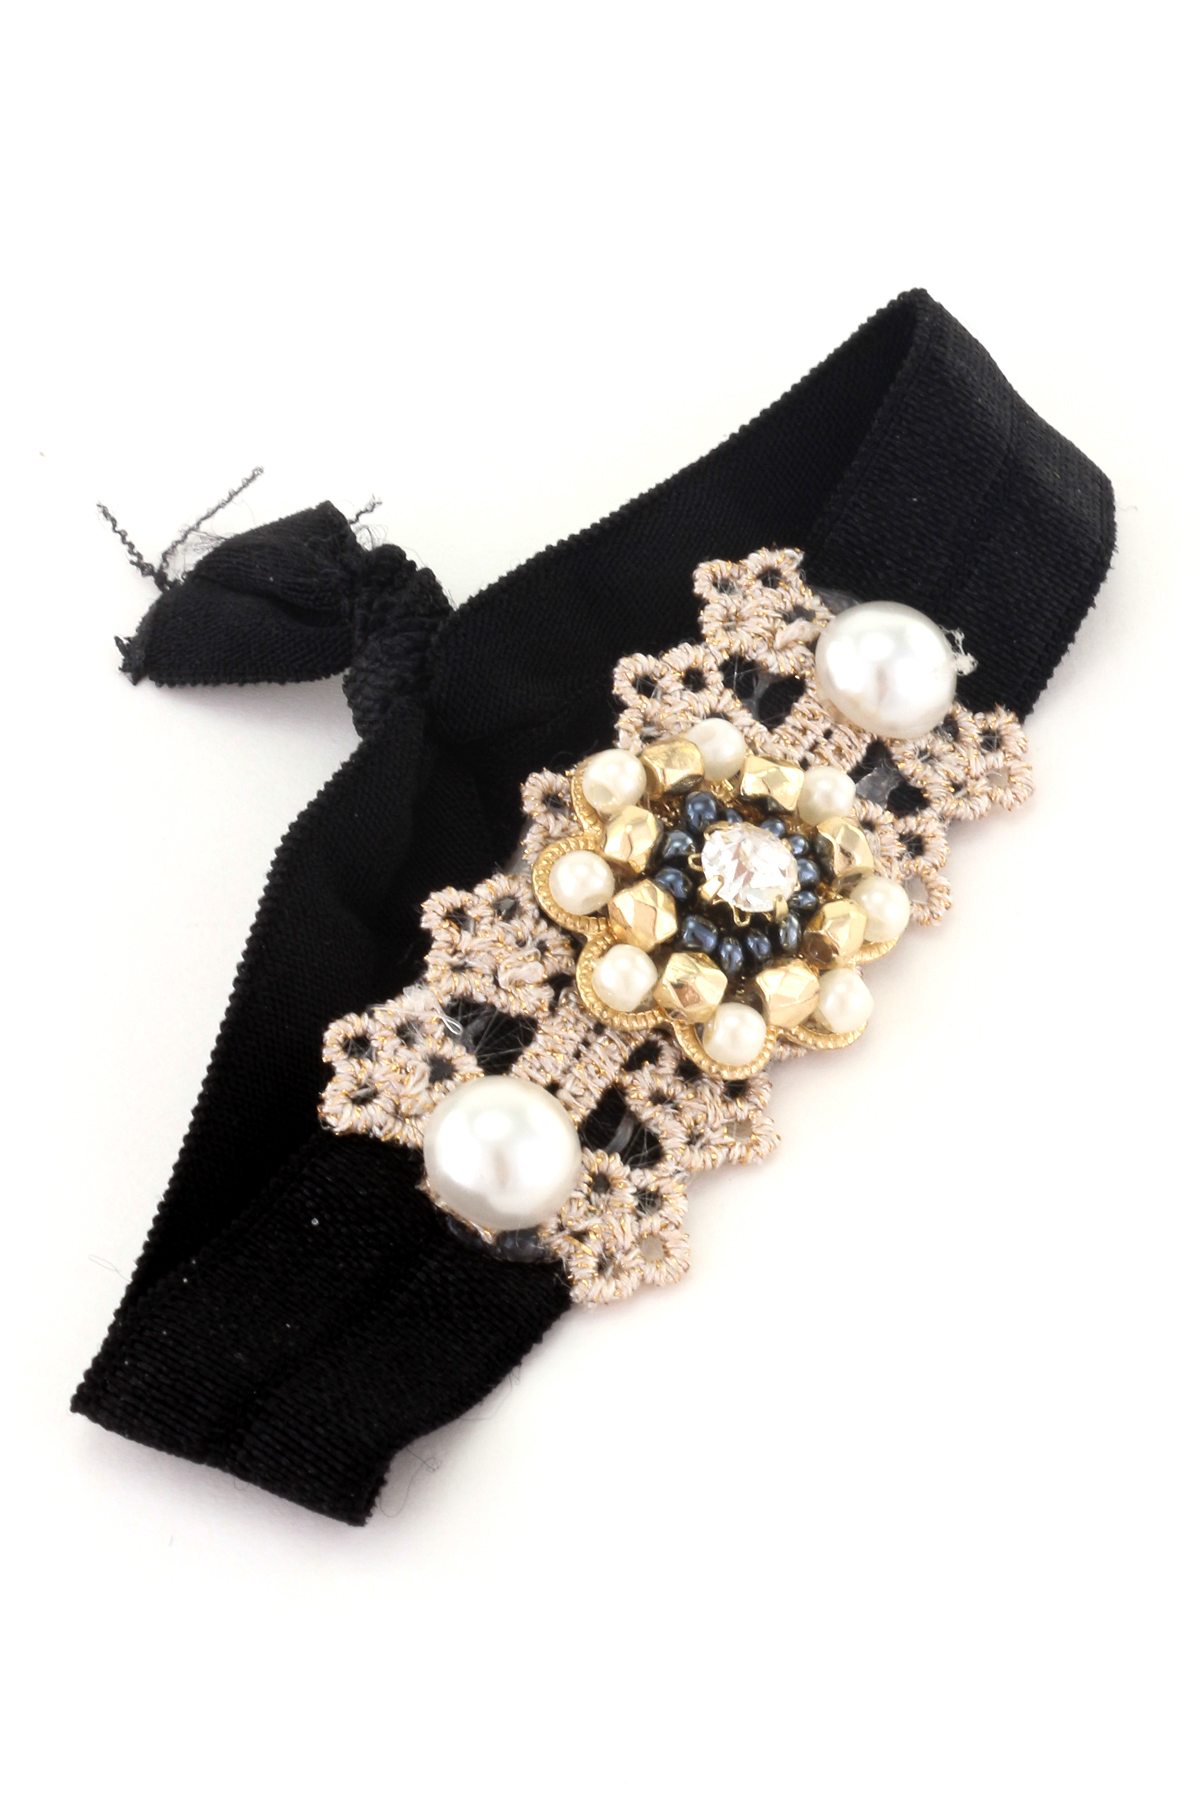 Buy low price, high quality hair ties lace with worldwide shipping on thrushop-9b4y6tny.ga